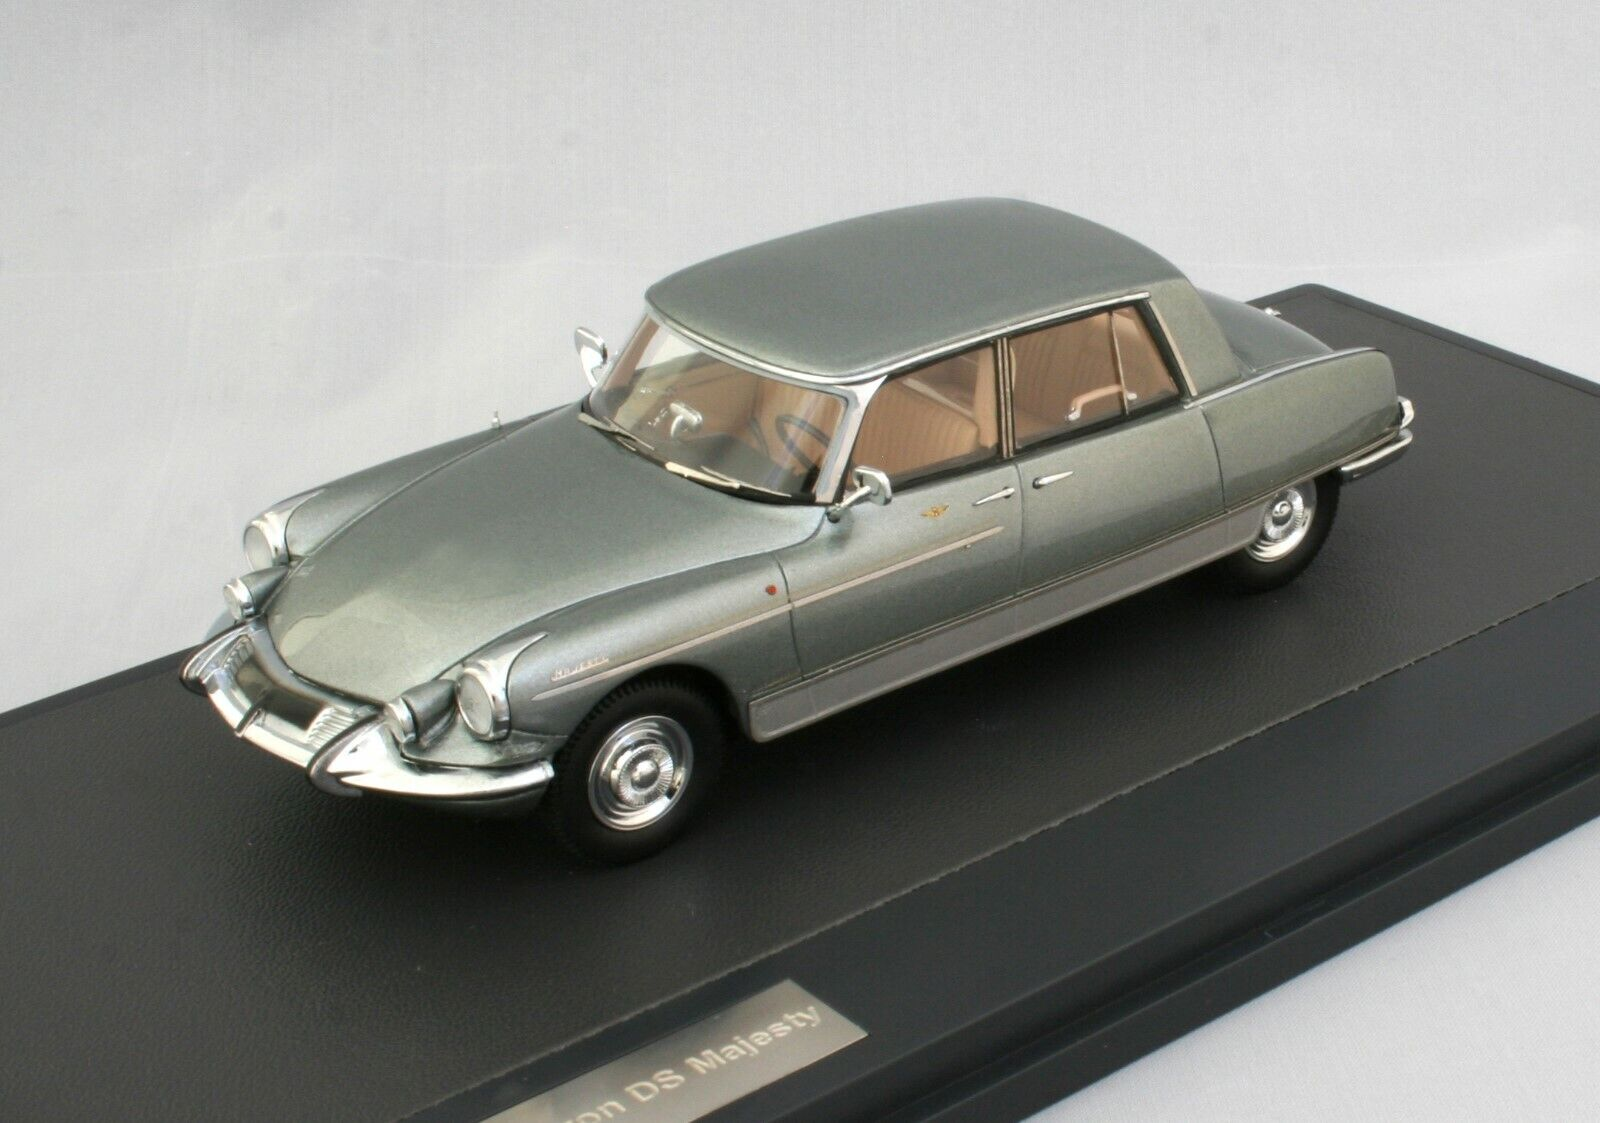 CITROEN DS MAJESTY - HENRI CHAPRON - 1966 - MATRIX MX 50304-041 - 1 43